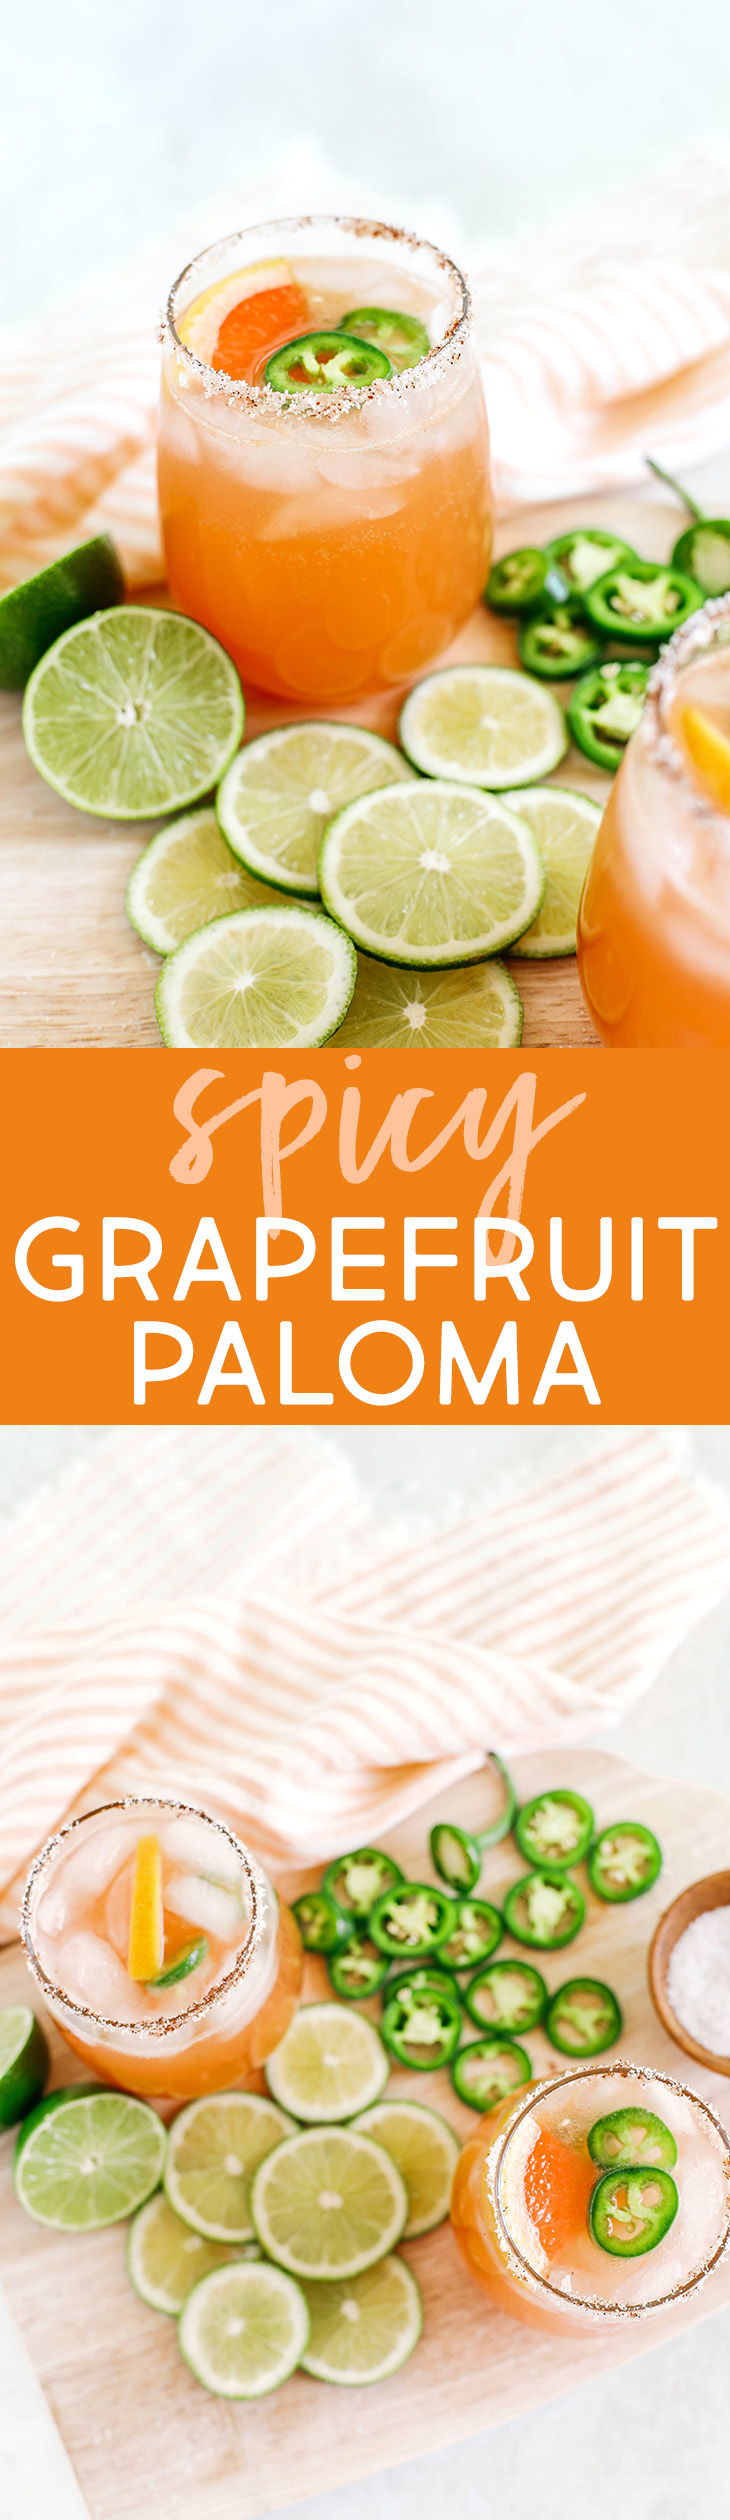 This Spicy Grapefruit Paloma is the perfect summer cocktail made with fresh limes and grapefruit, your favorite tequila, sparkling water, and my sweet and spicy jalapeño honey syrup!